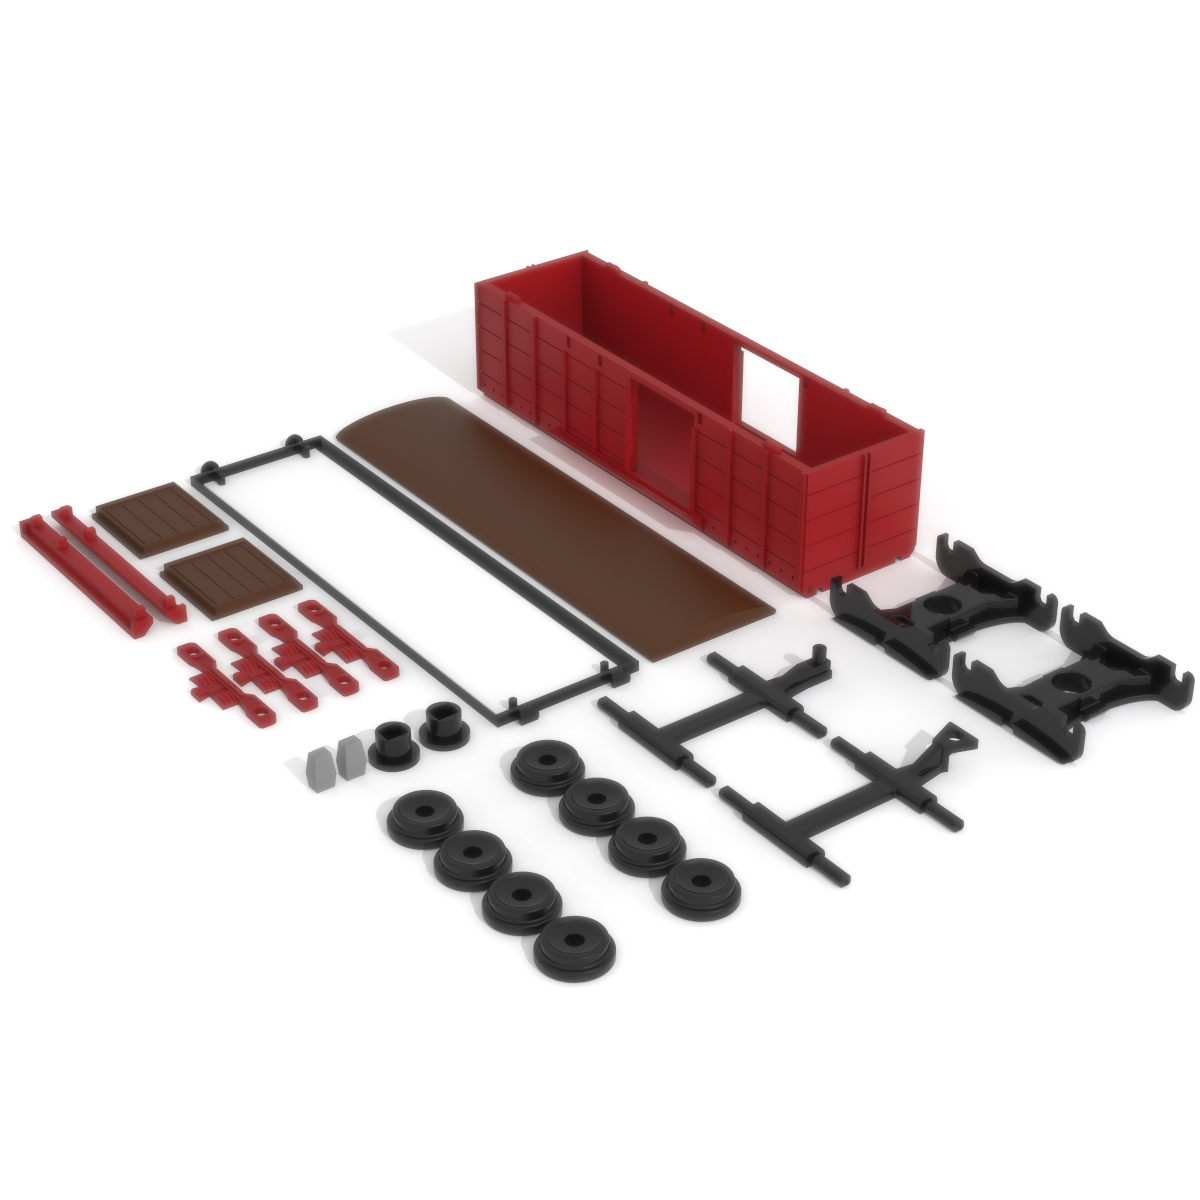 Freight Wagon Print Bed, 3D Printer Models